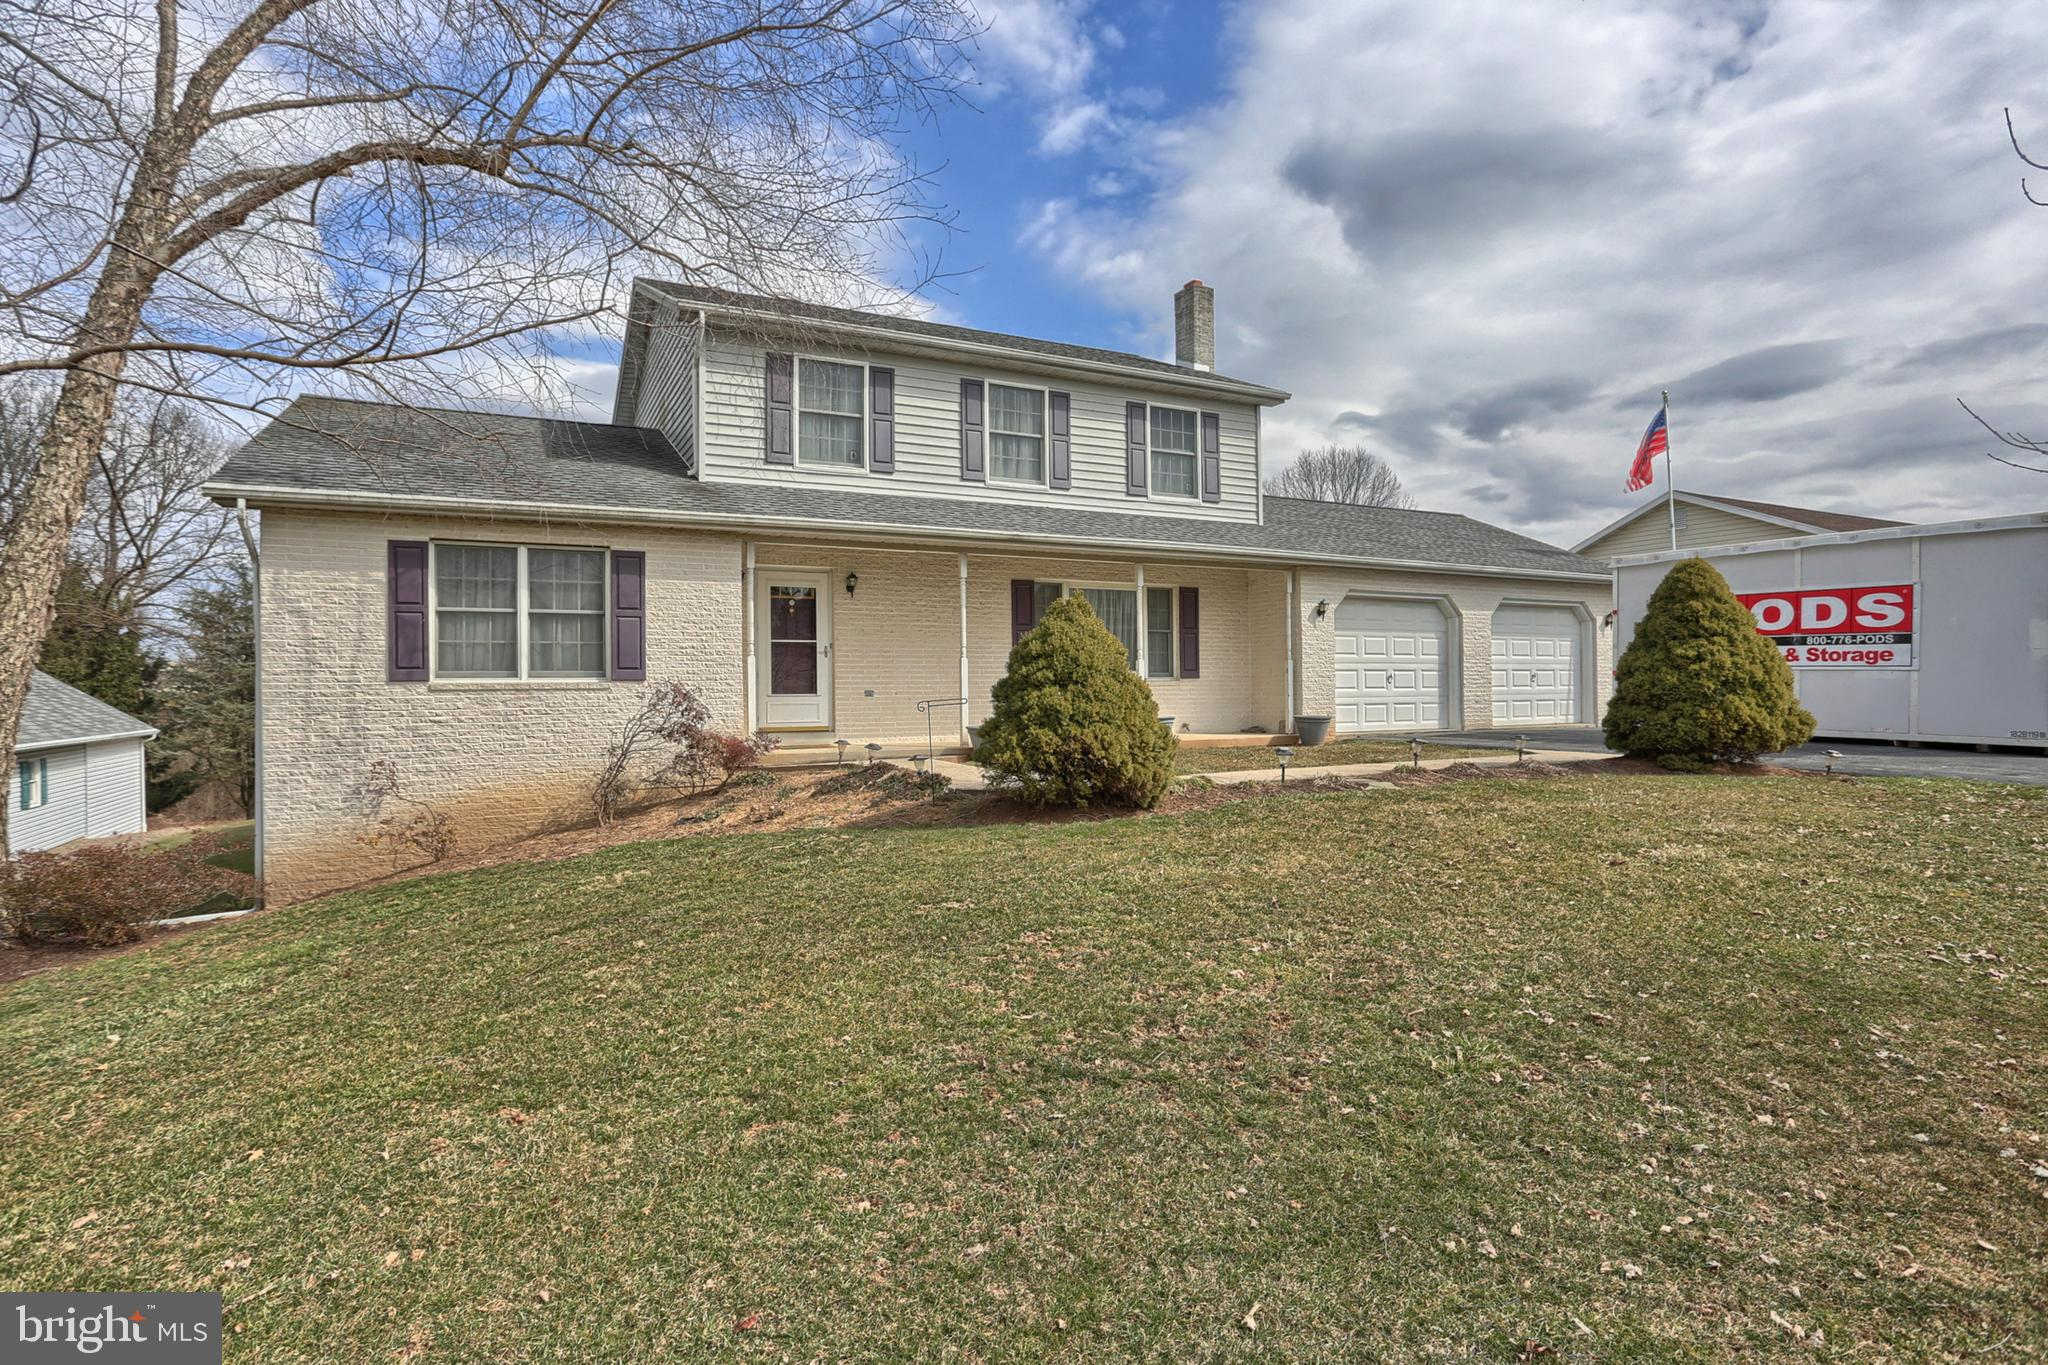 1415 CANDLEWYCKE DRIVE, MIDDLETOWN, PA 17057